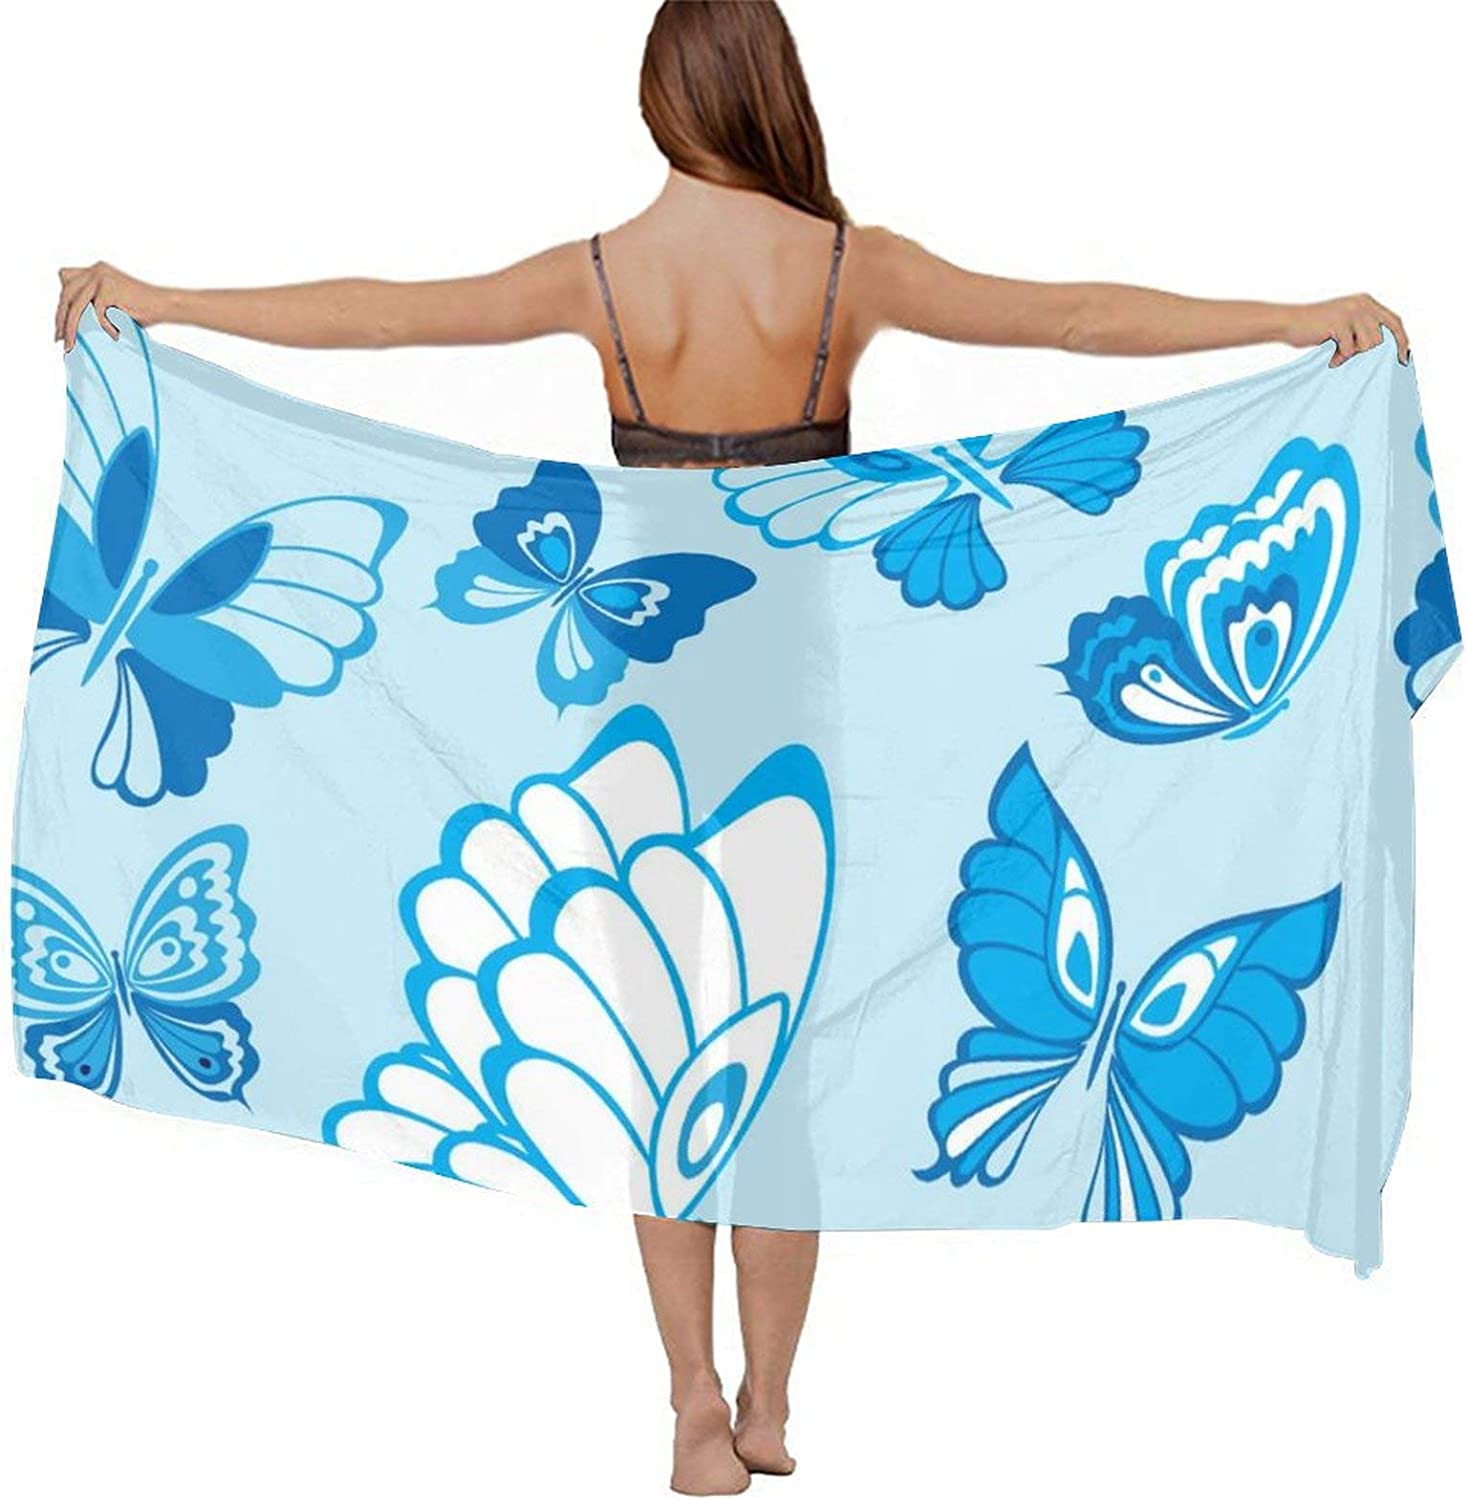 Women's Chiffon Butterfly Beach Scarf Smooth Sunscreen Wrap Shawl Scarves Bikini Cover-Up Wrap Scarf Swimsuit Sarongs Summer Beach Cover Ups